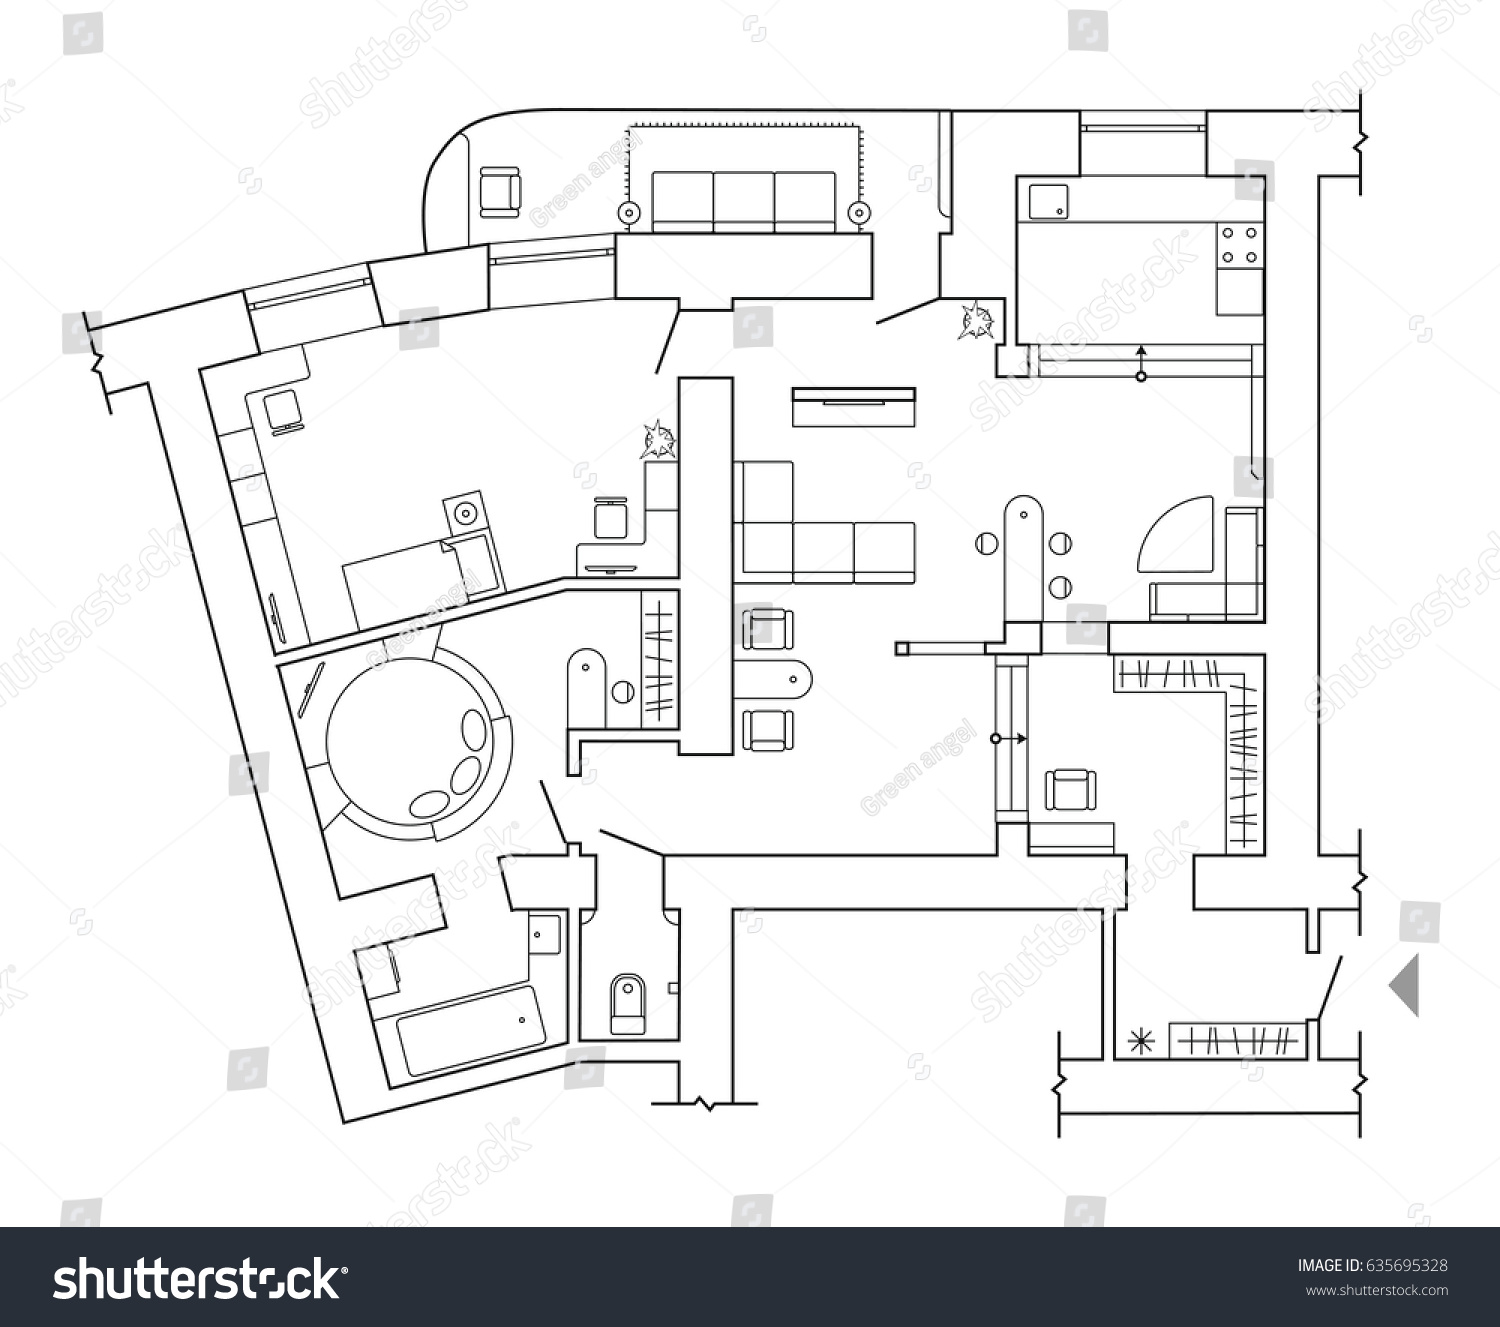 Floor Plan   Top View Plans. Standard Home Furniture Symbols Set Used In  Architecture Plans